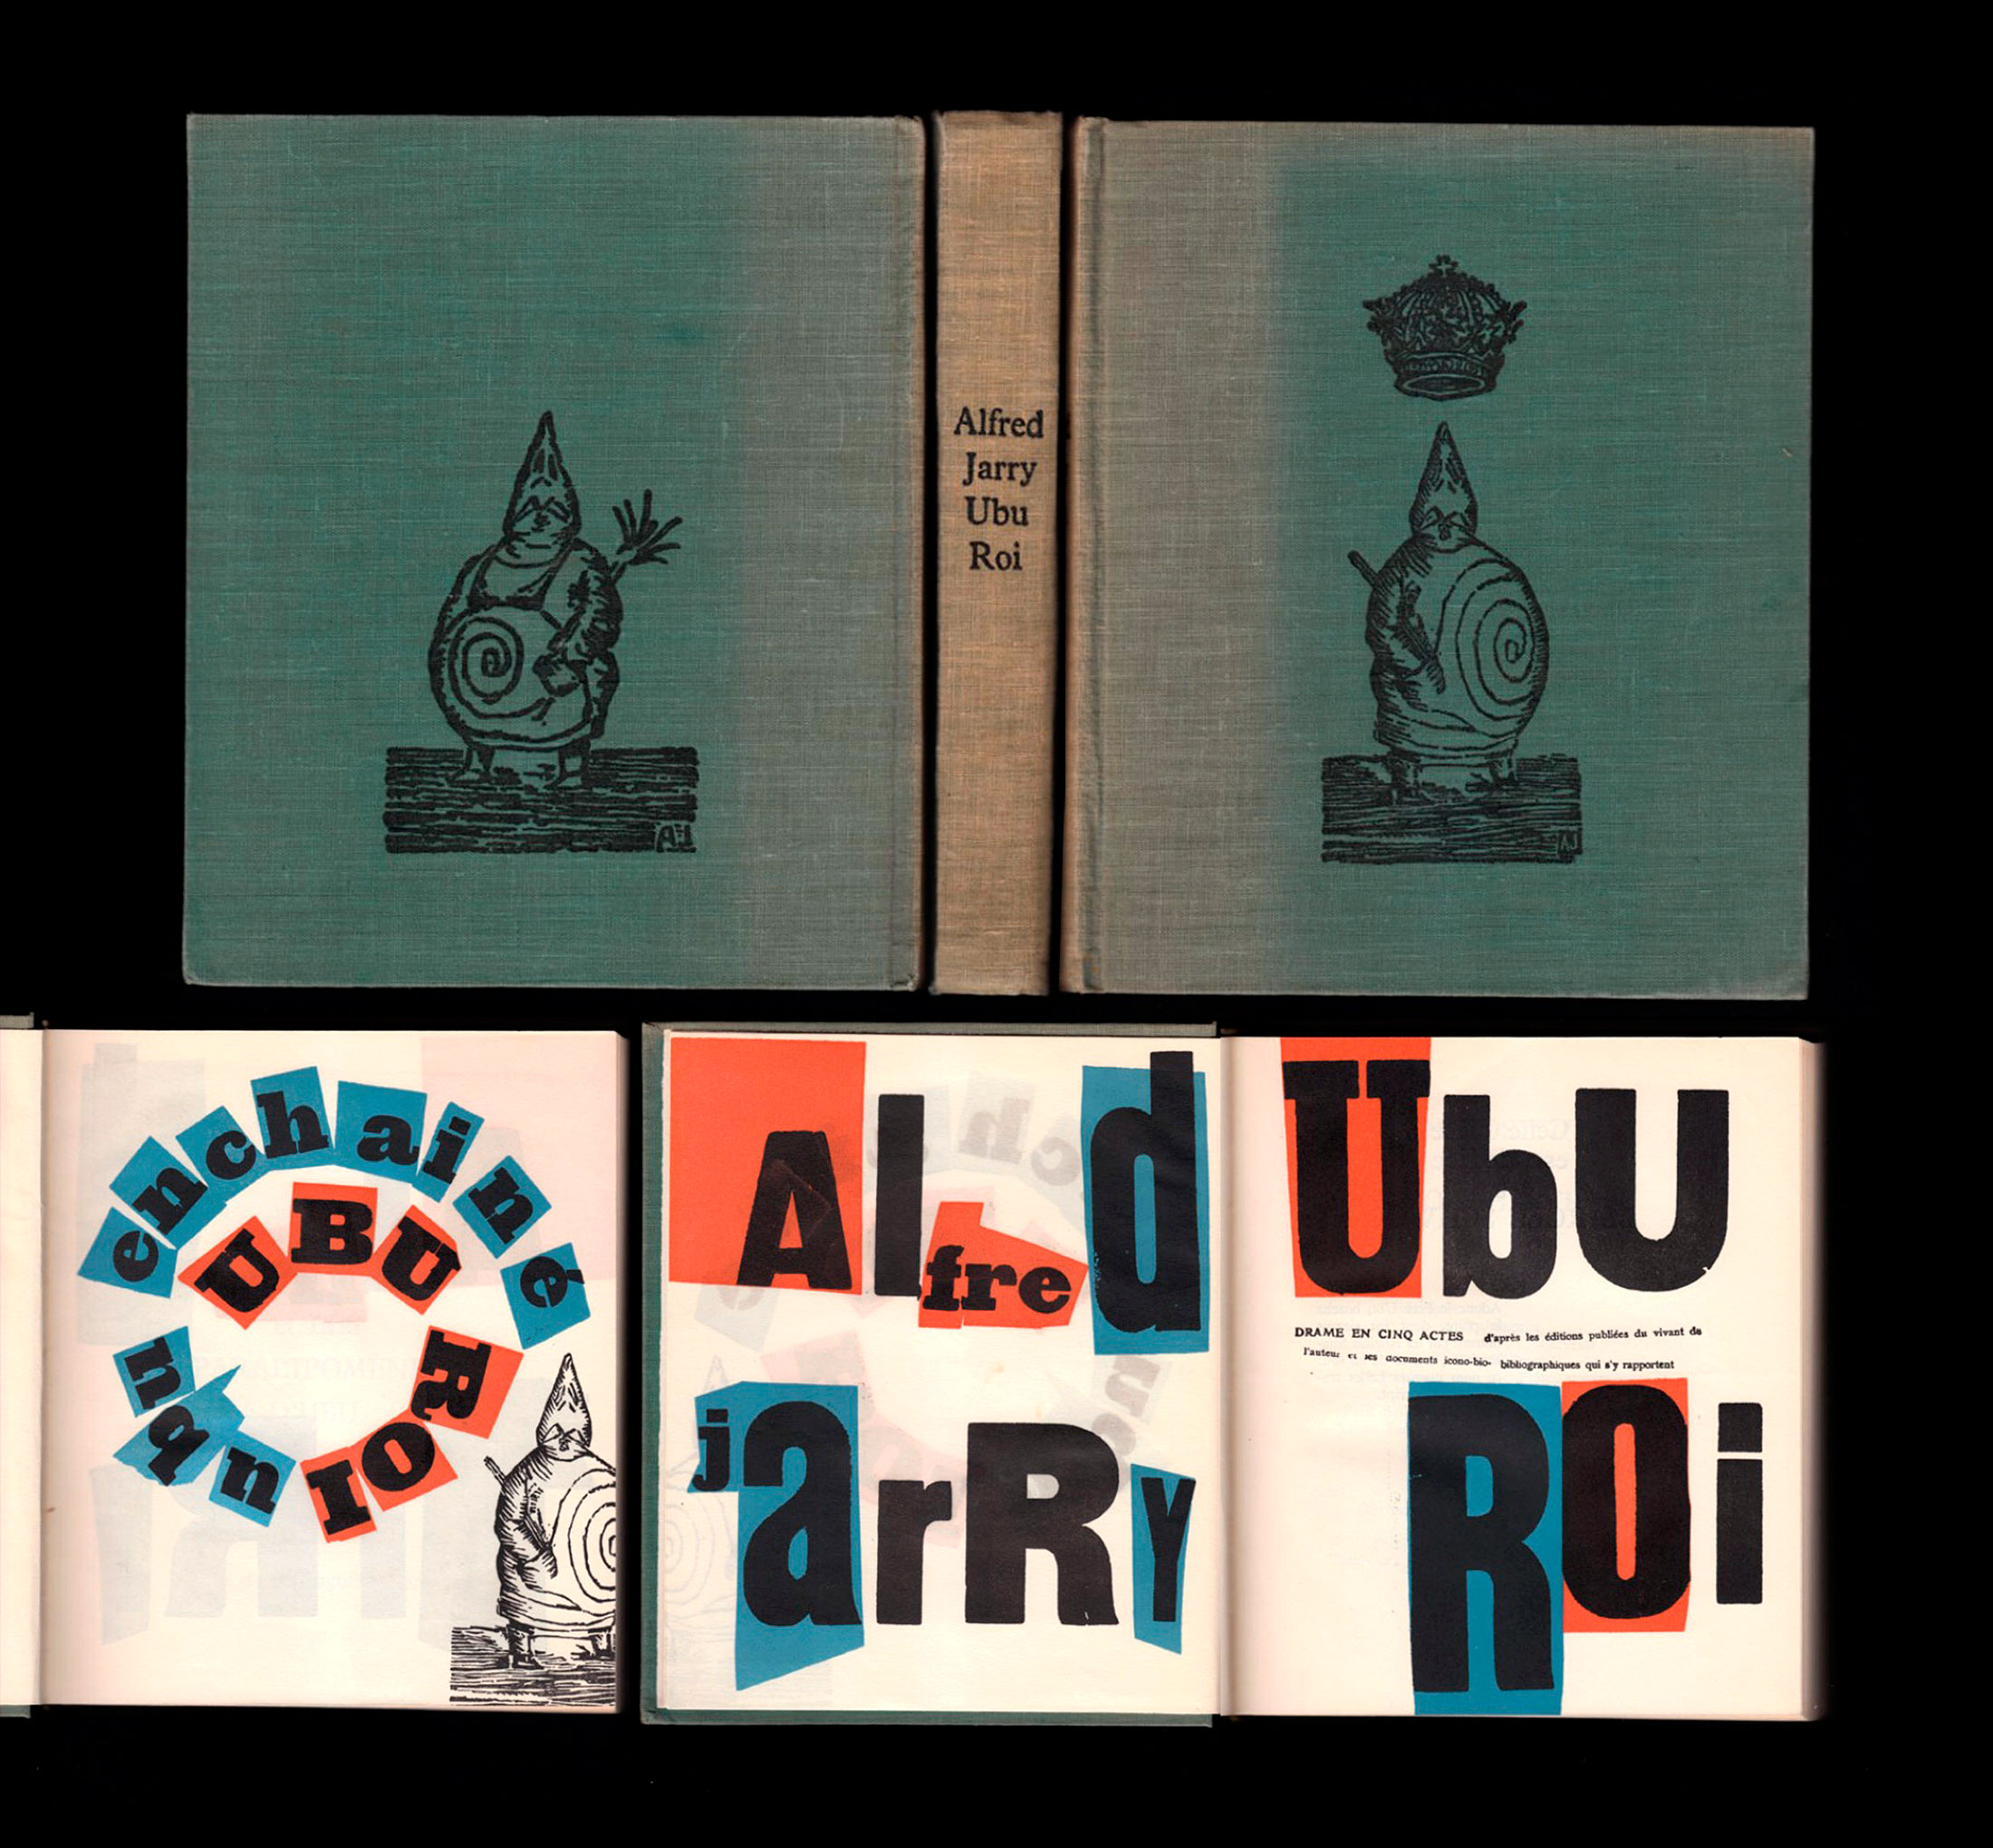 ubu roi sparknotes Ubu roi by alfred jarry 29 editions first published in 1896 subjects: accessible book, lending library, in library, protected daisy people: alfred jarry (1873-1907.